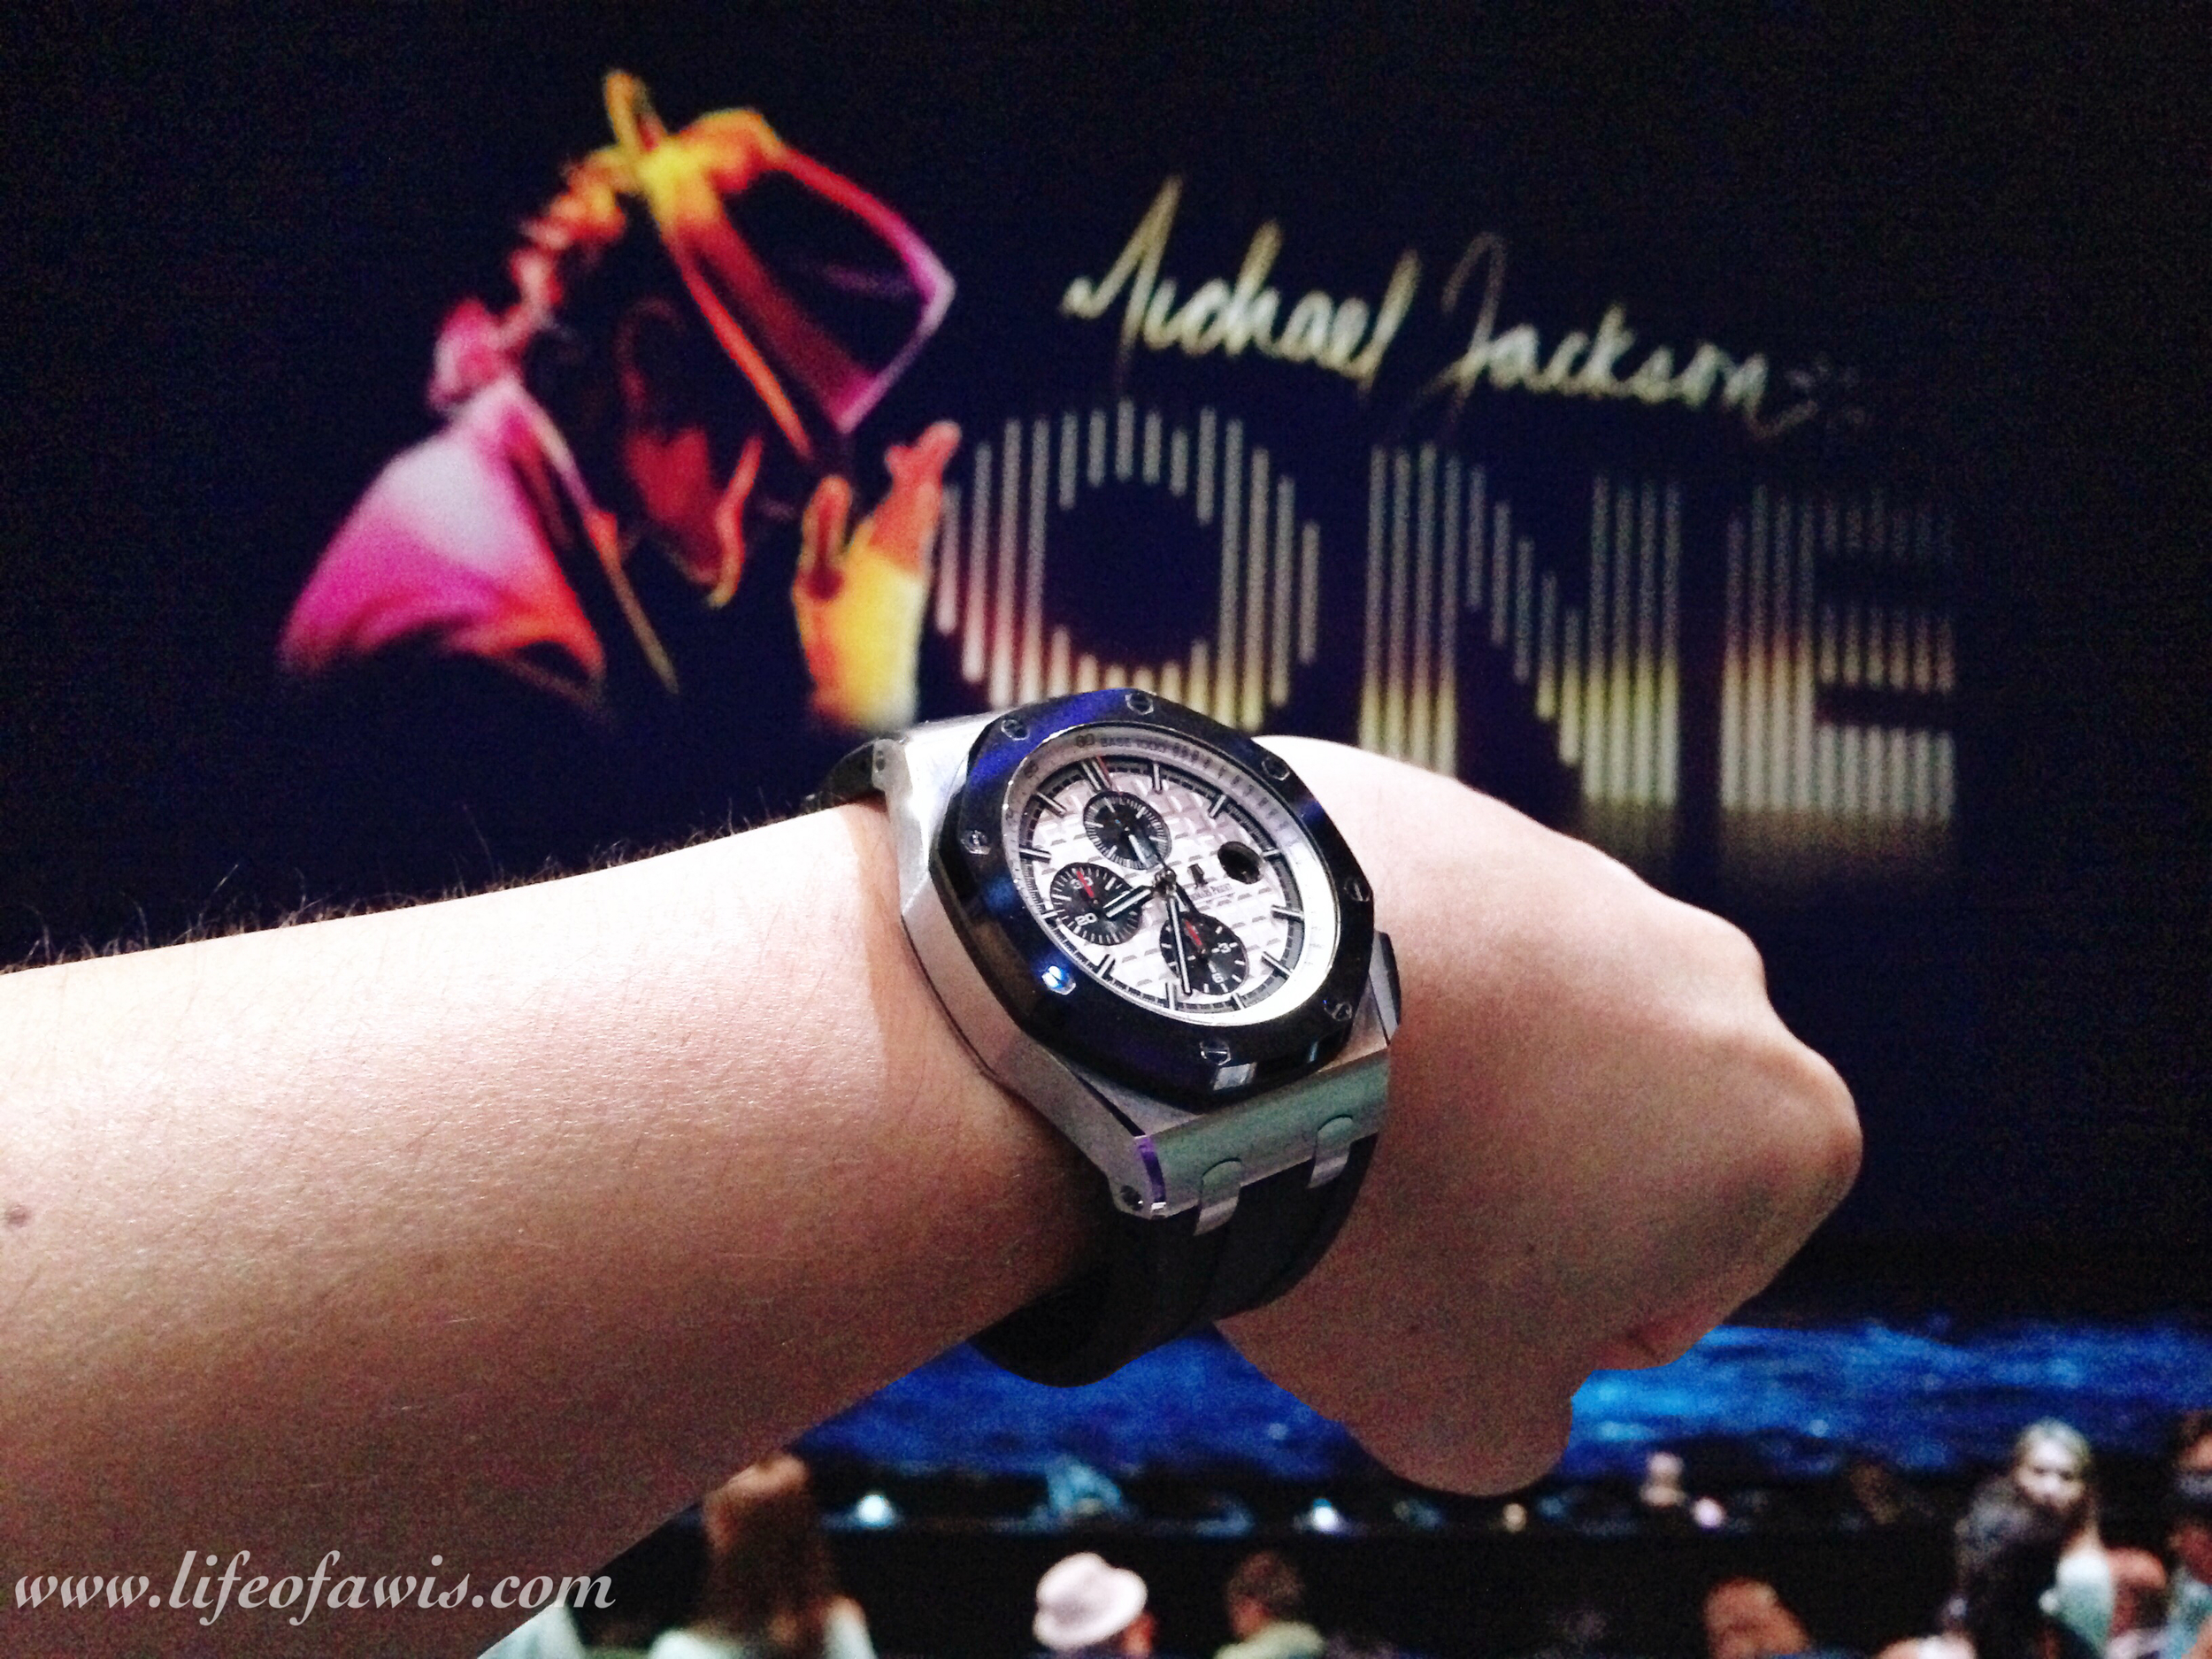 The last Cirque du Soleil show I saw was Michael Jackson ONE, which ranked #4 on my list.